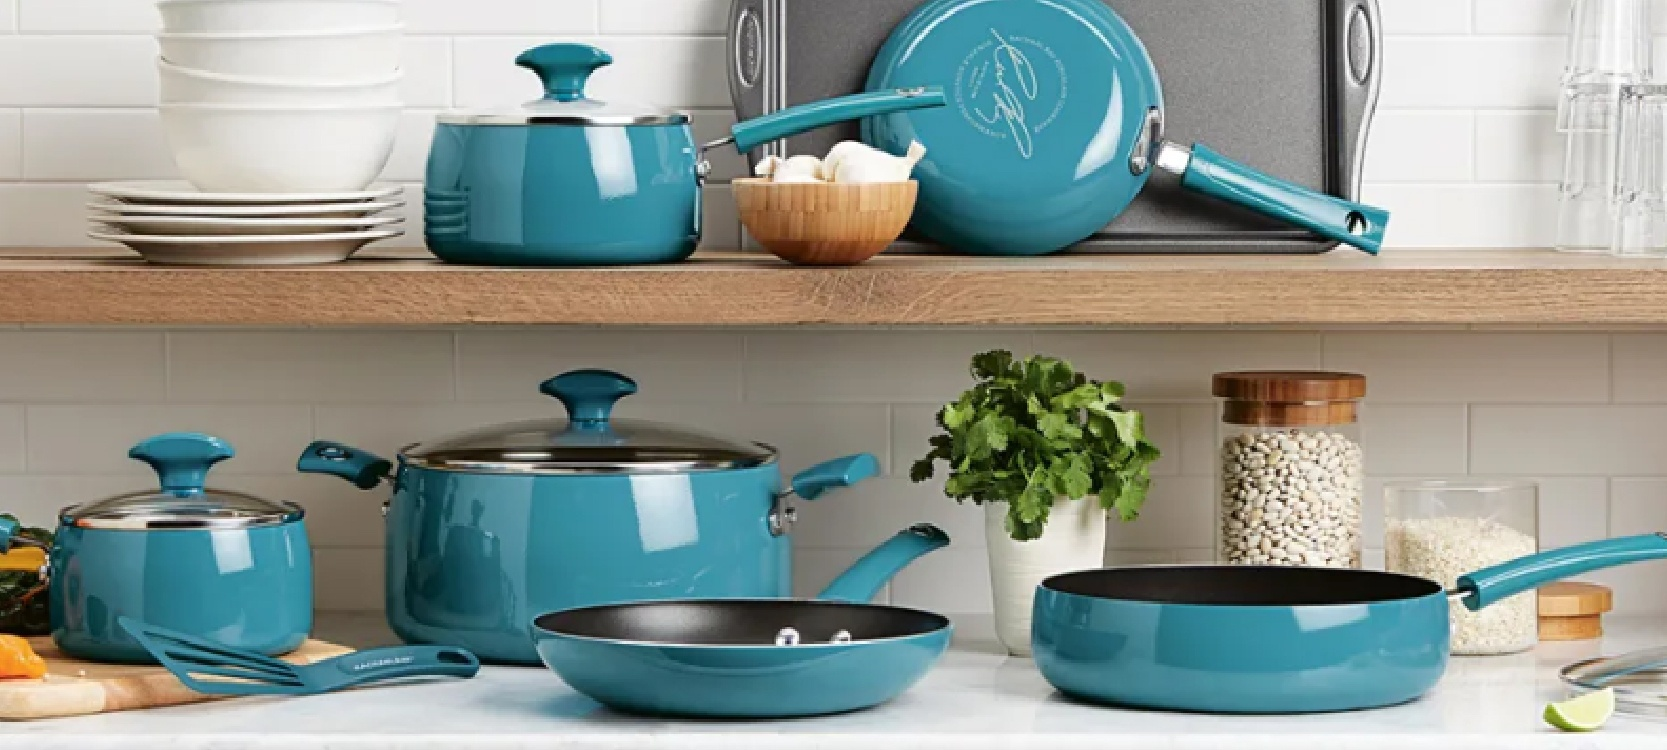 the lovely Rachel Ray cookware in blue